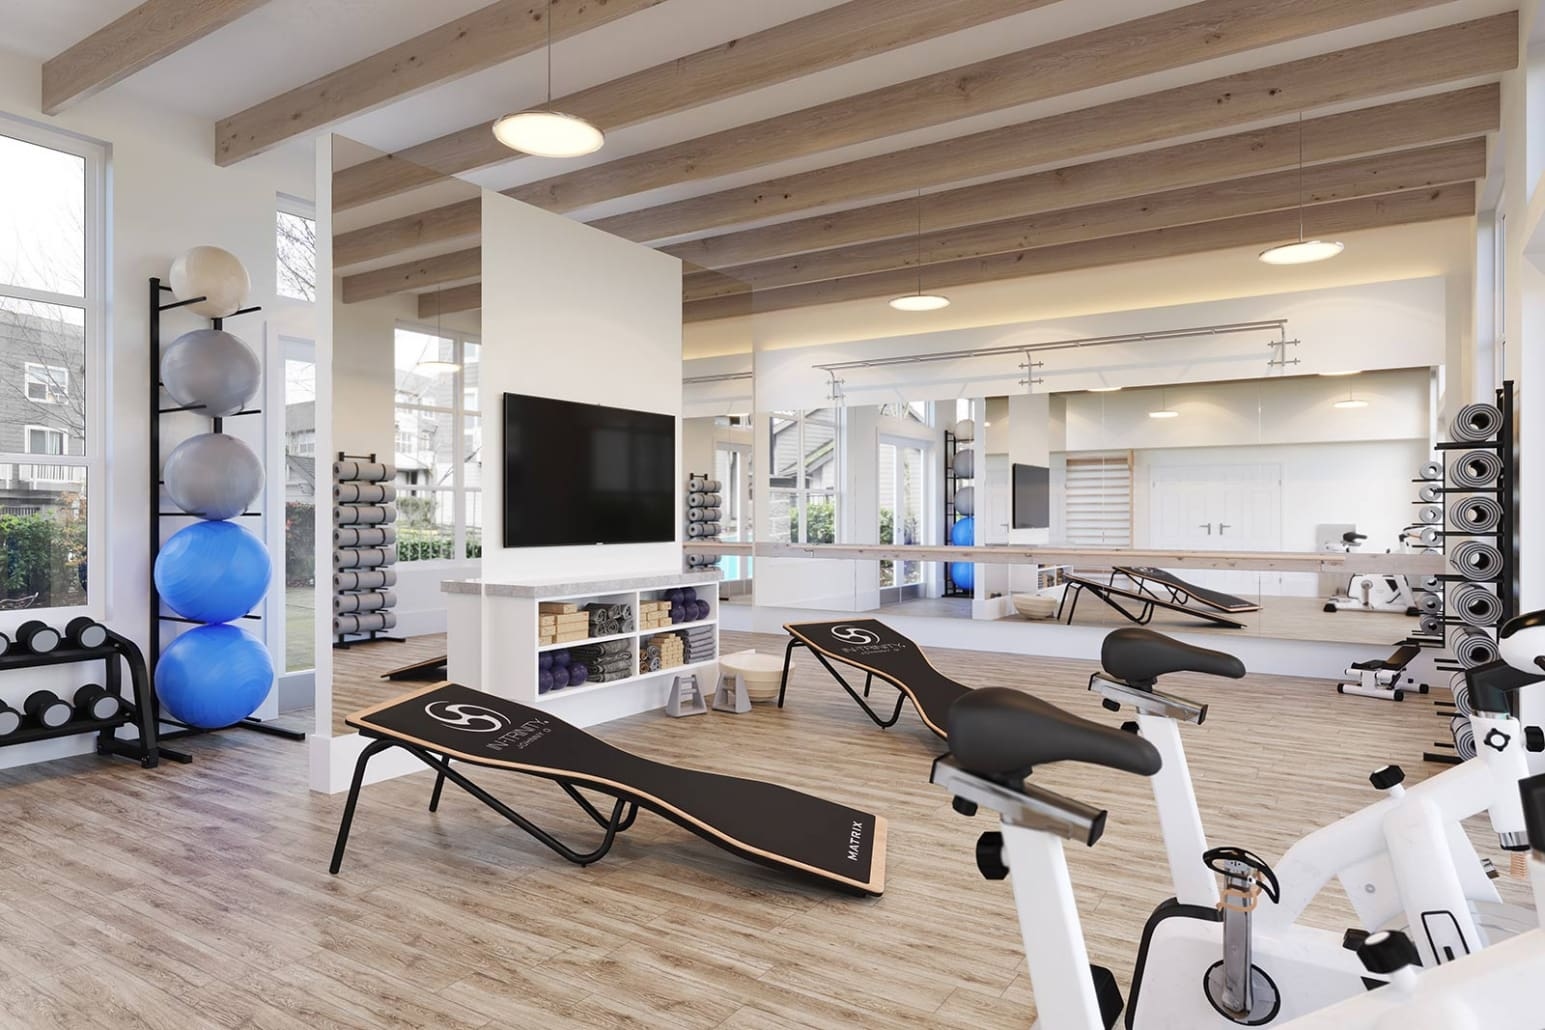 Holland LaSalle Exercise Room 3D Rendering Located in Beaverton, Oregon